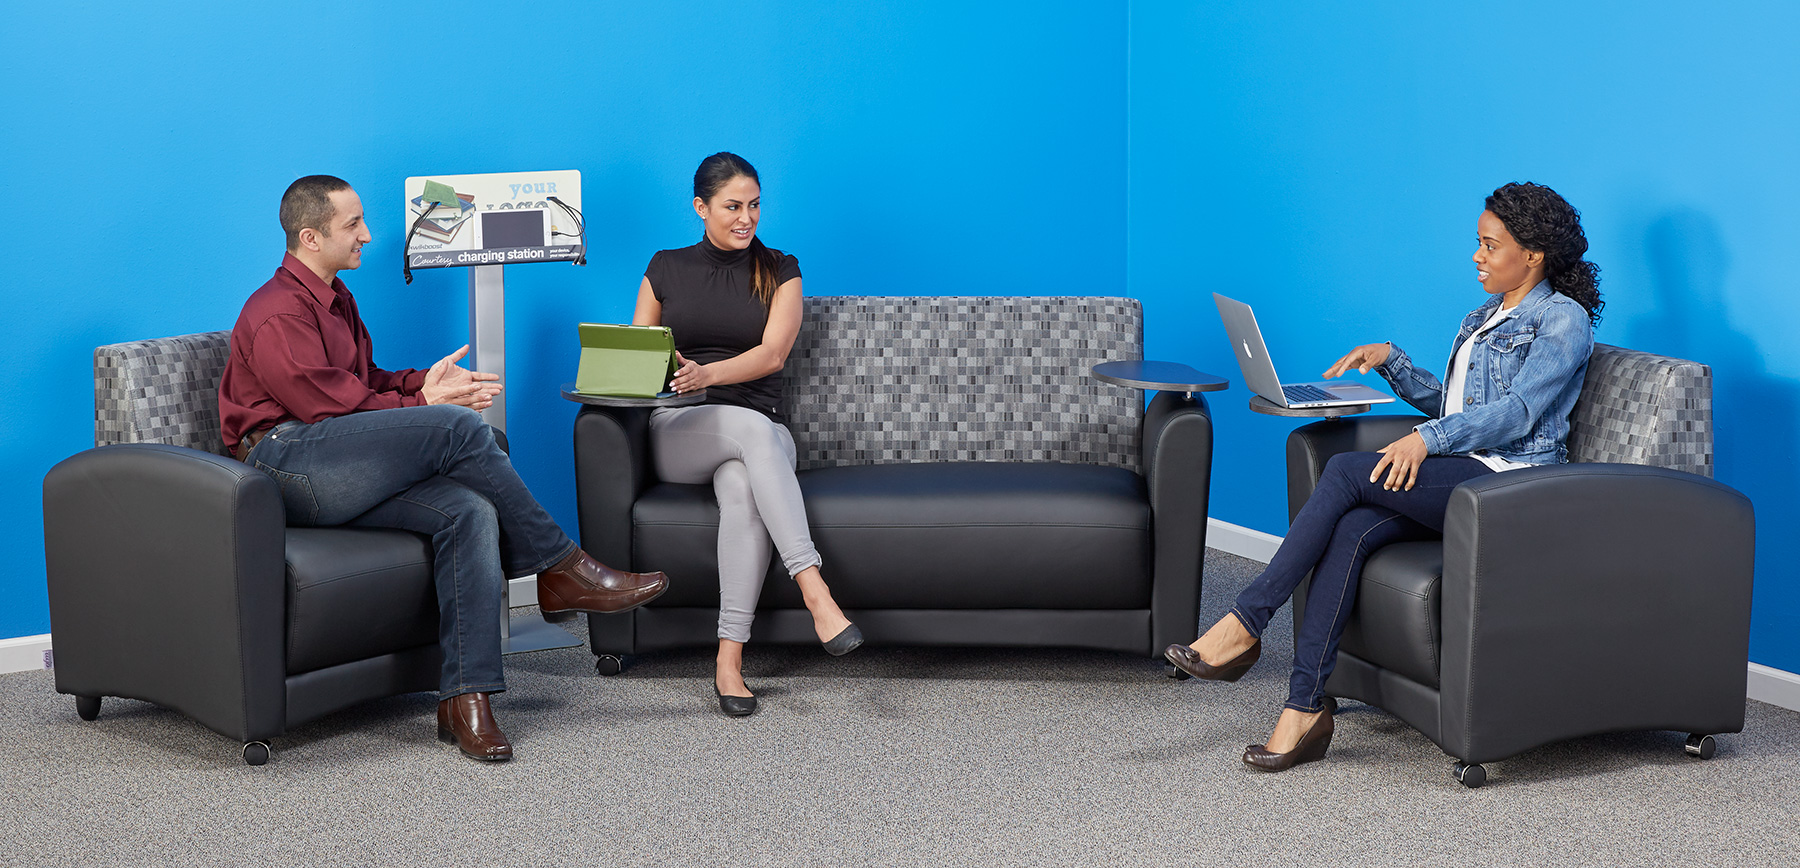 As Group Sizes Fluctuate, The OFM Interplay Lounge Seating Is Easy To  Rearrange Or Keep In Place, Thanks To Locking Casters. Optional Tablet Arms  Also ...